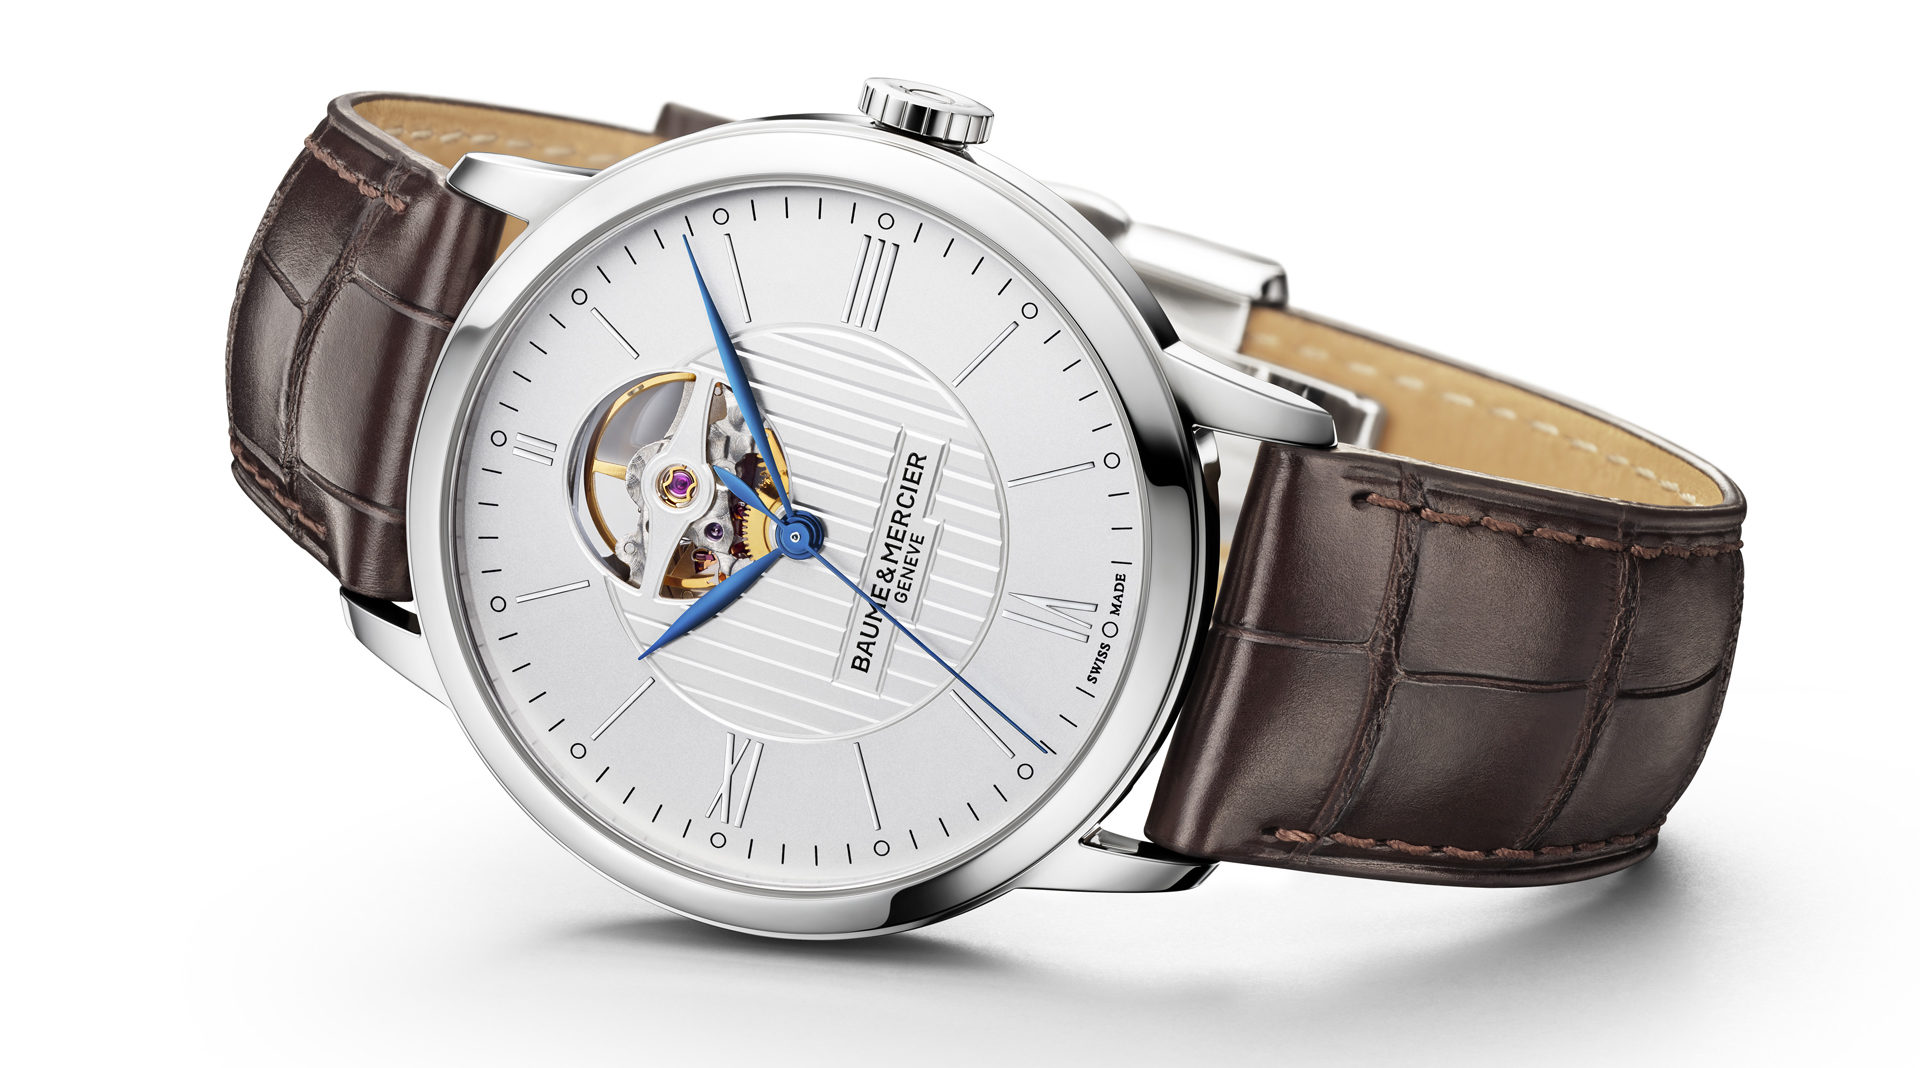 Baume & Mercier Classima 10274 and 10275